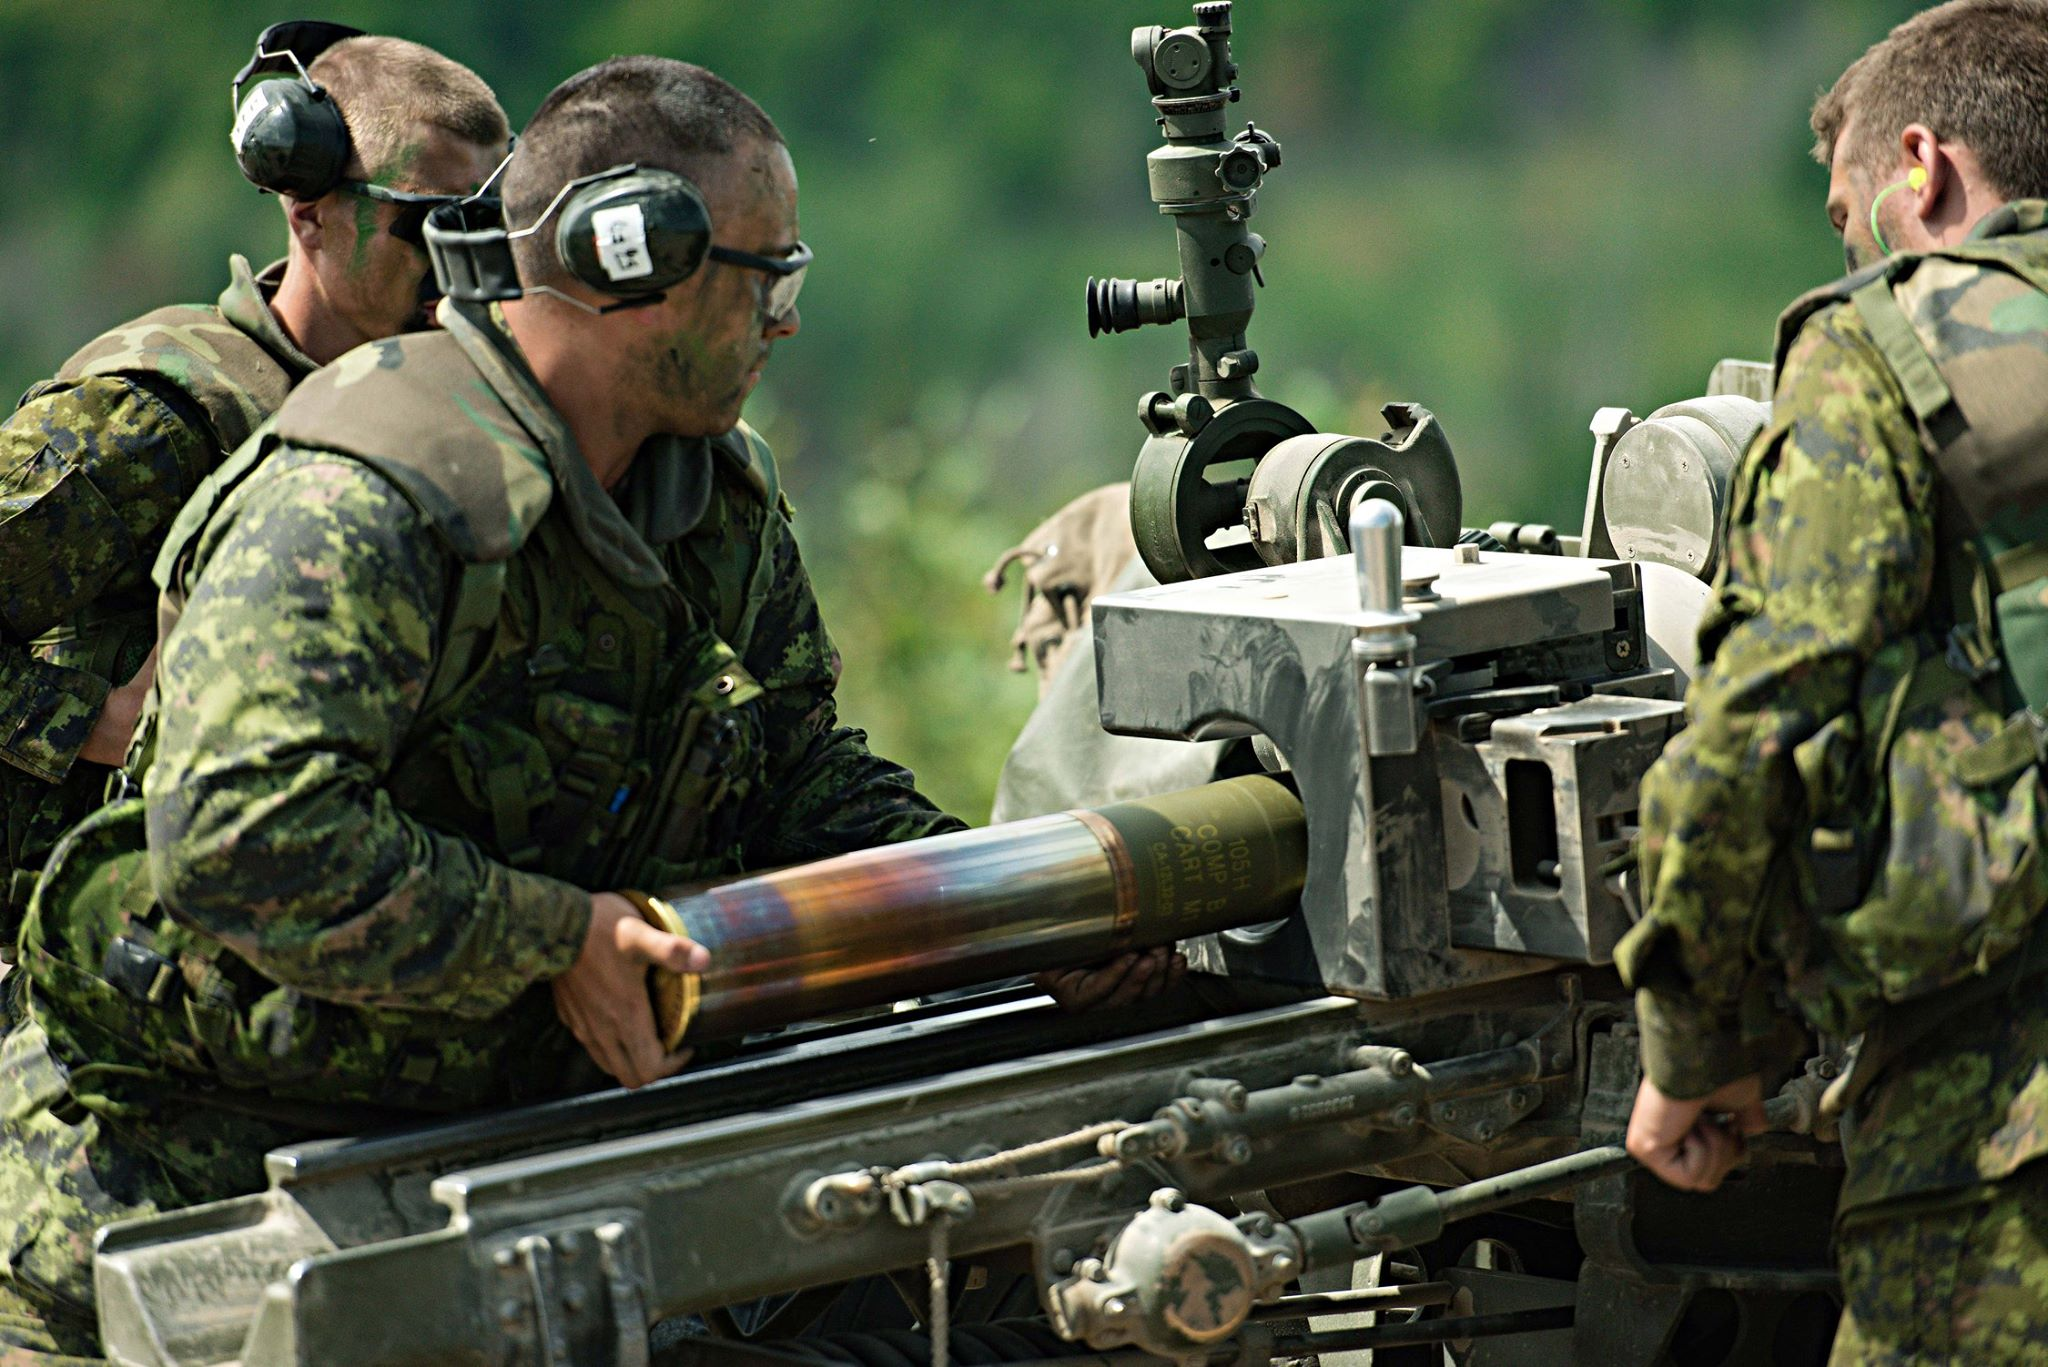 Canadian special forces have been in gun fights with ISIL